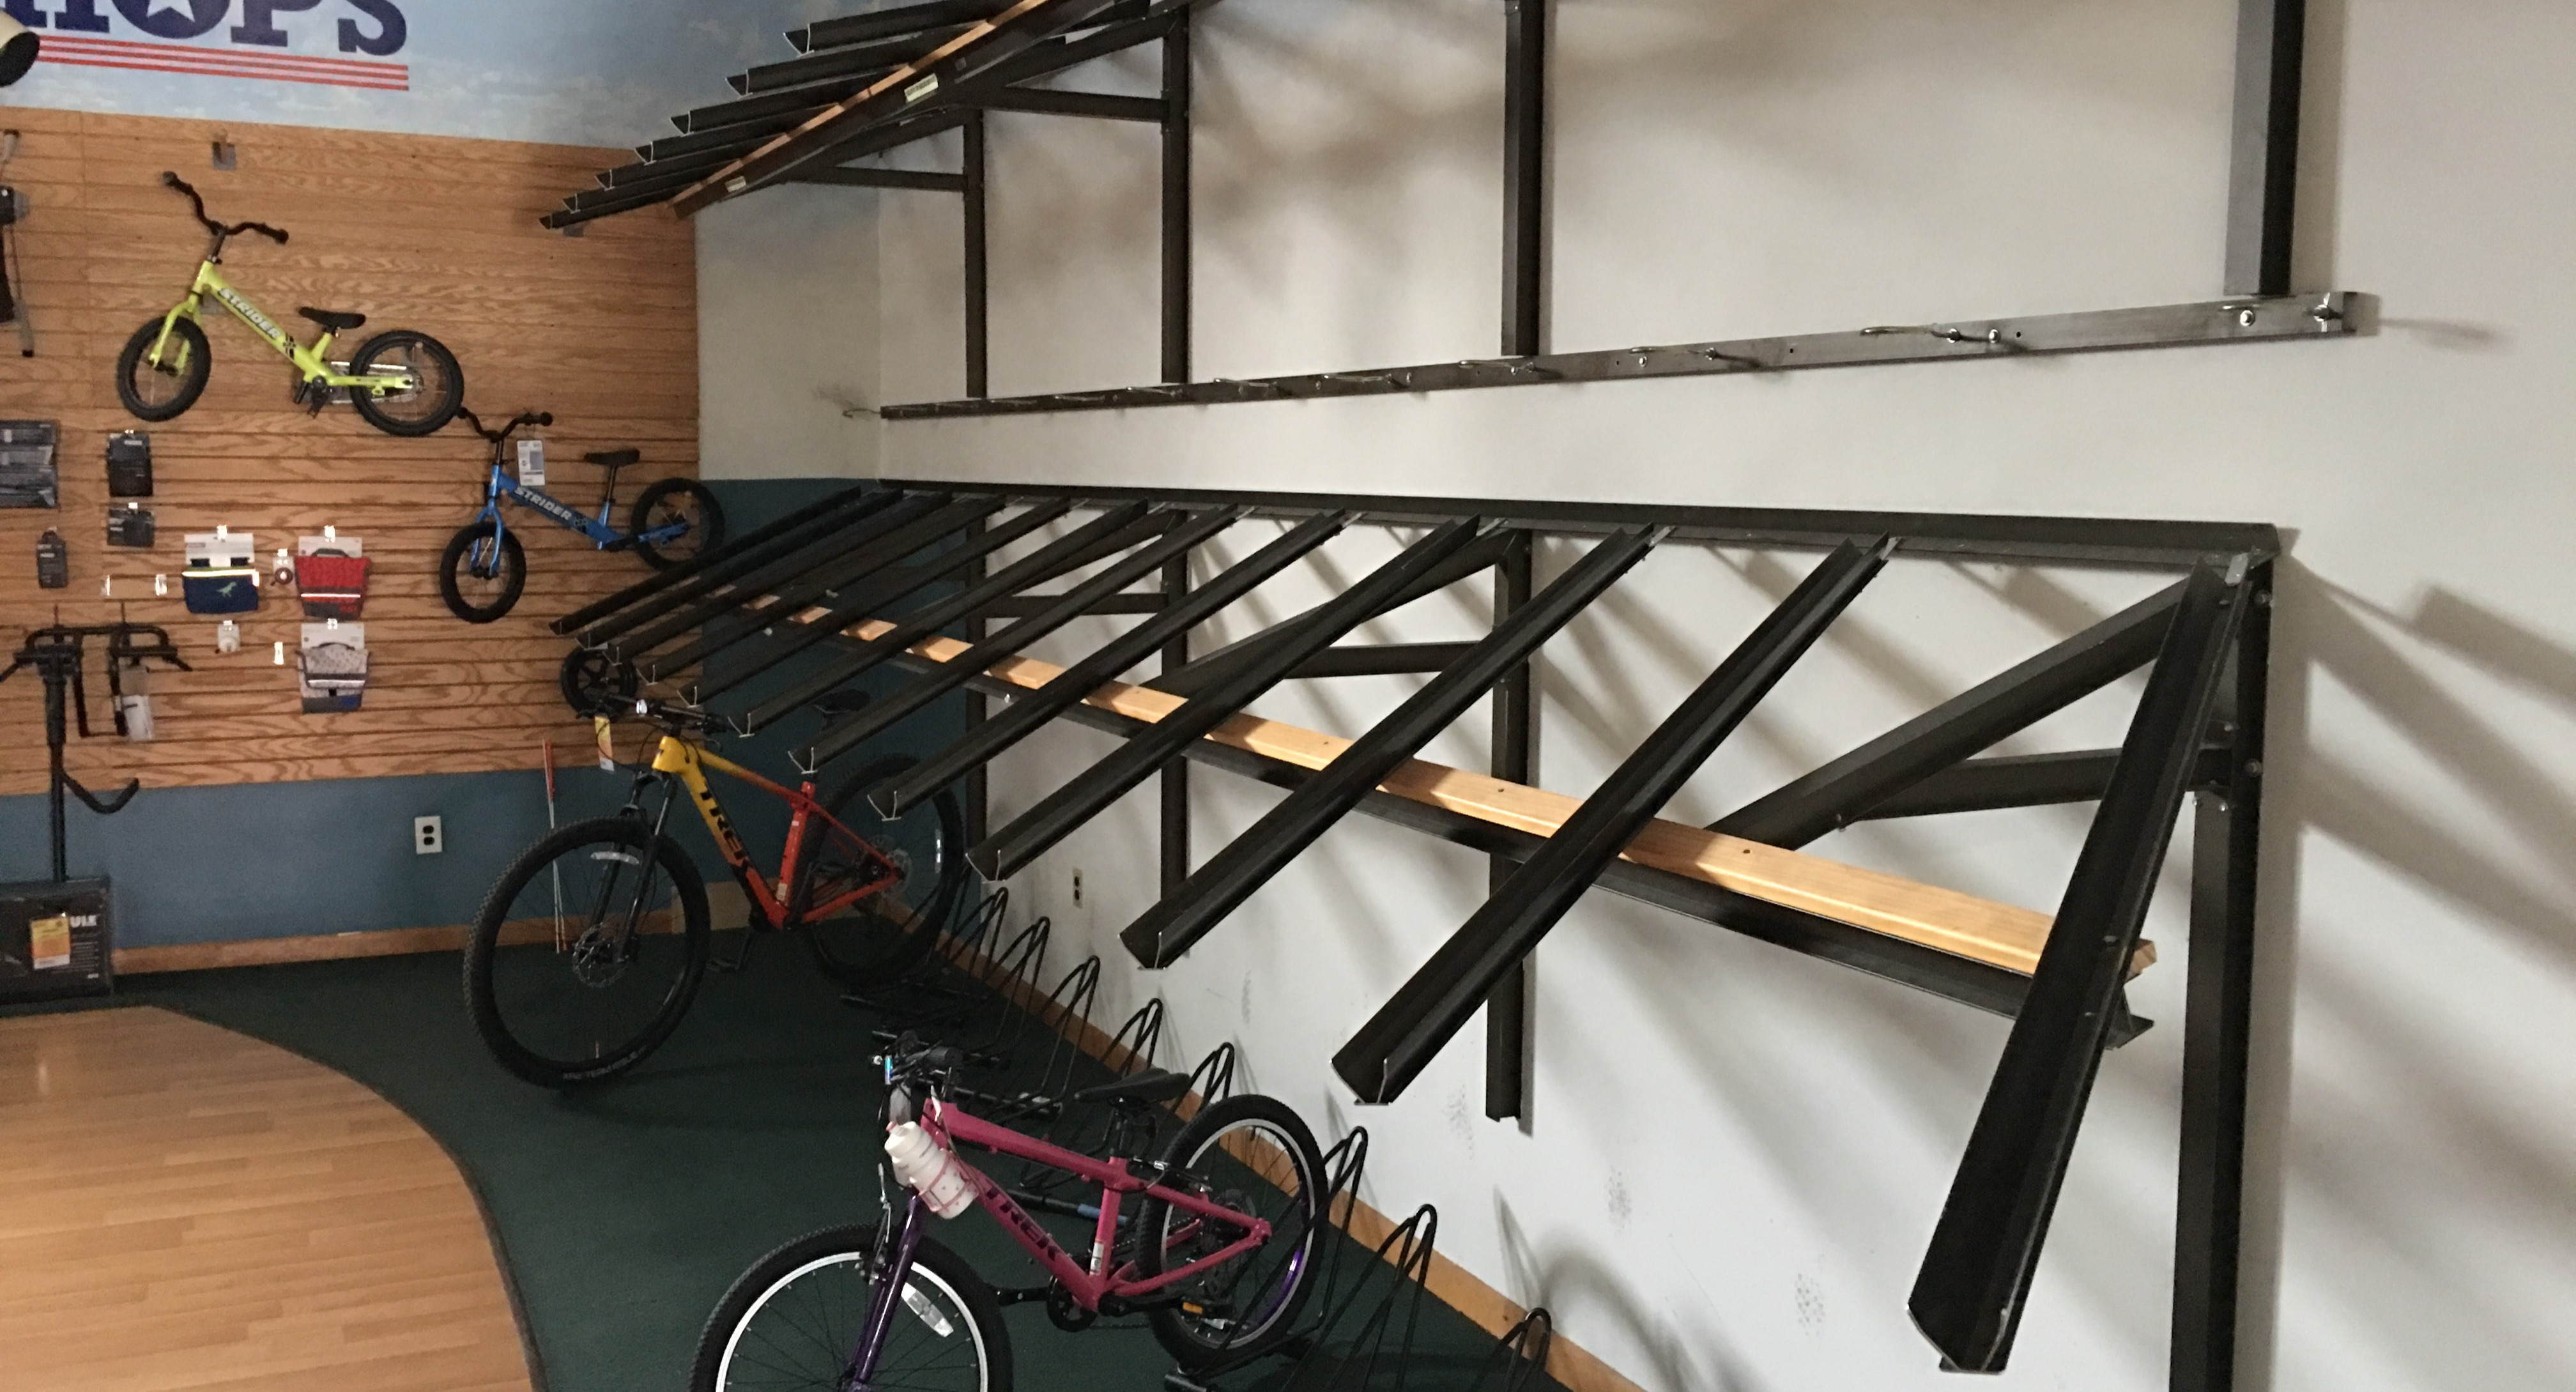 Pandemic bike shortage view of showroom (just stocked with a few bikes)